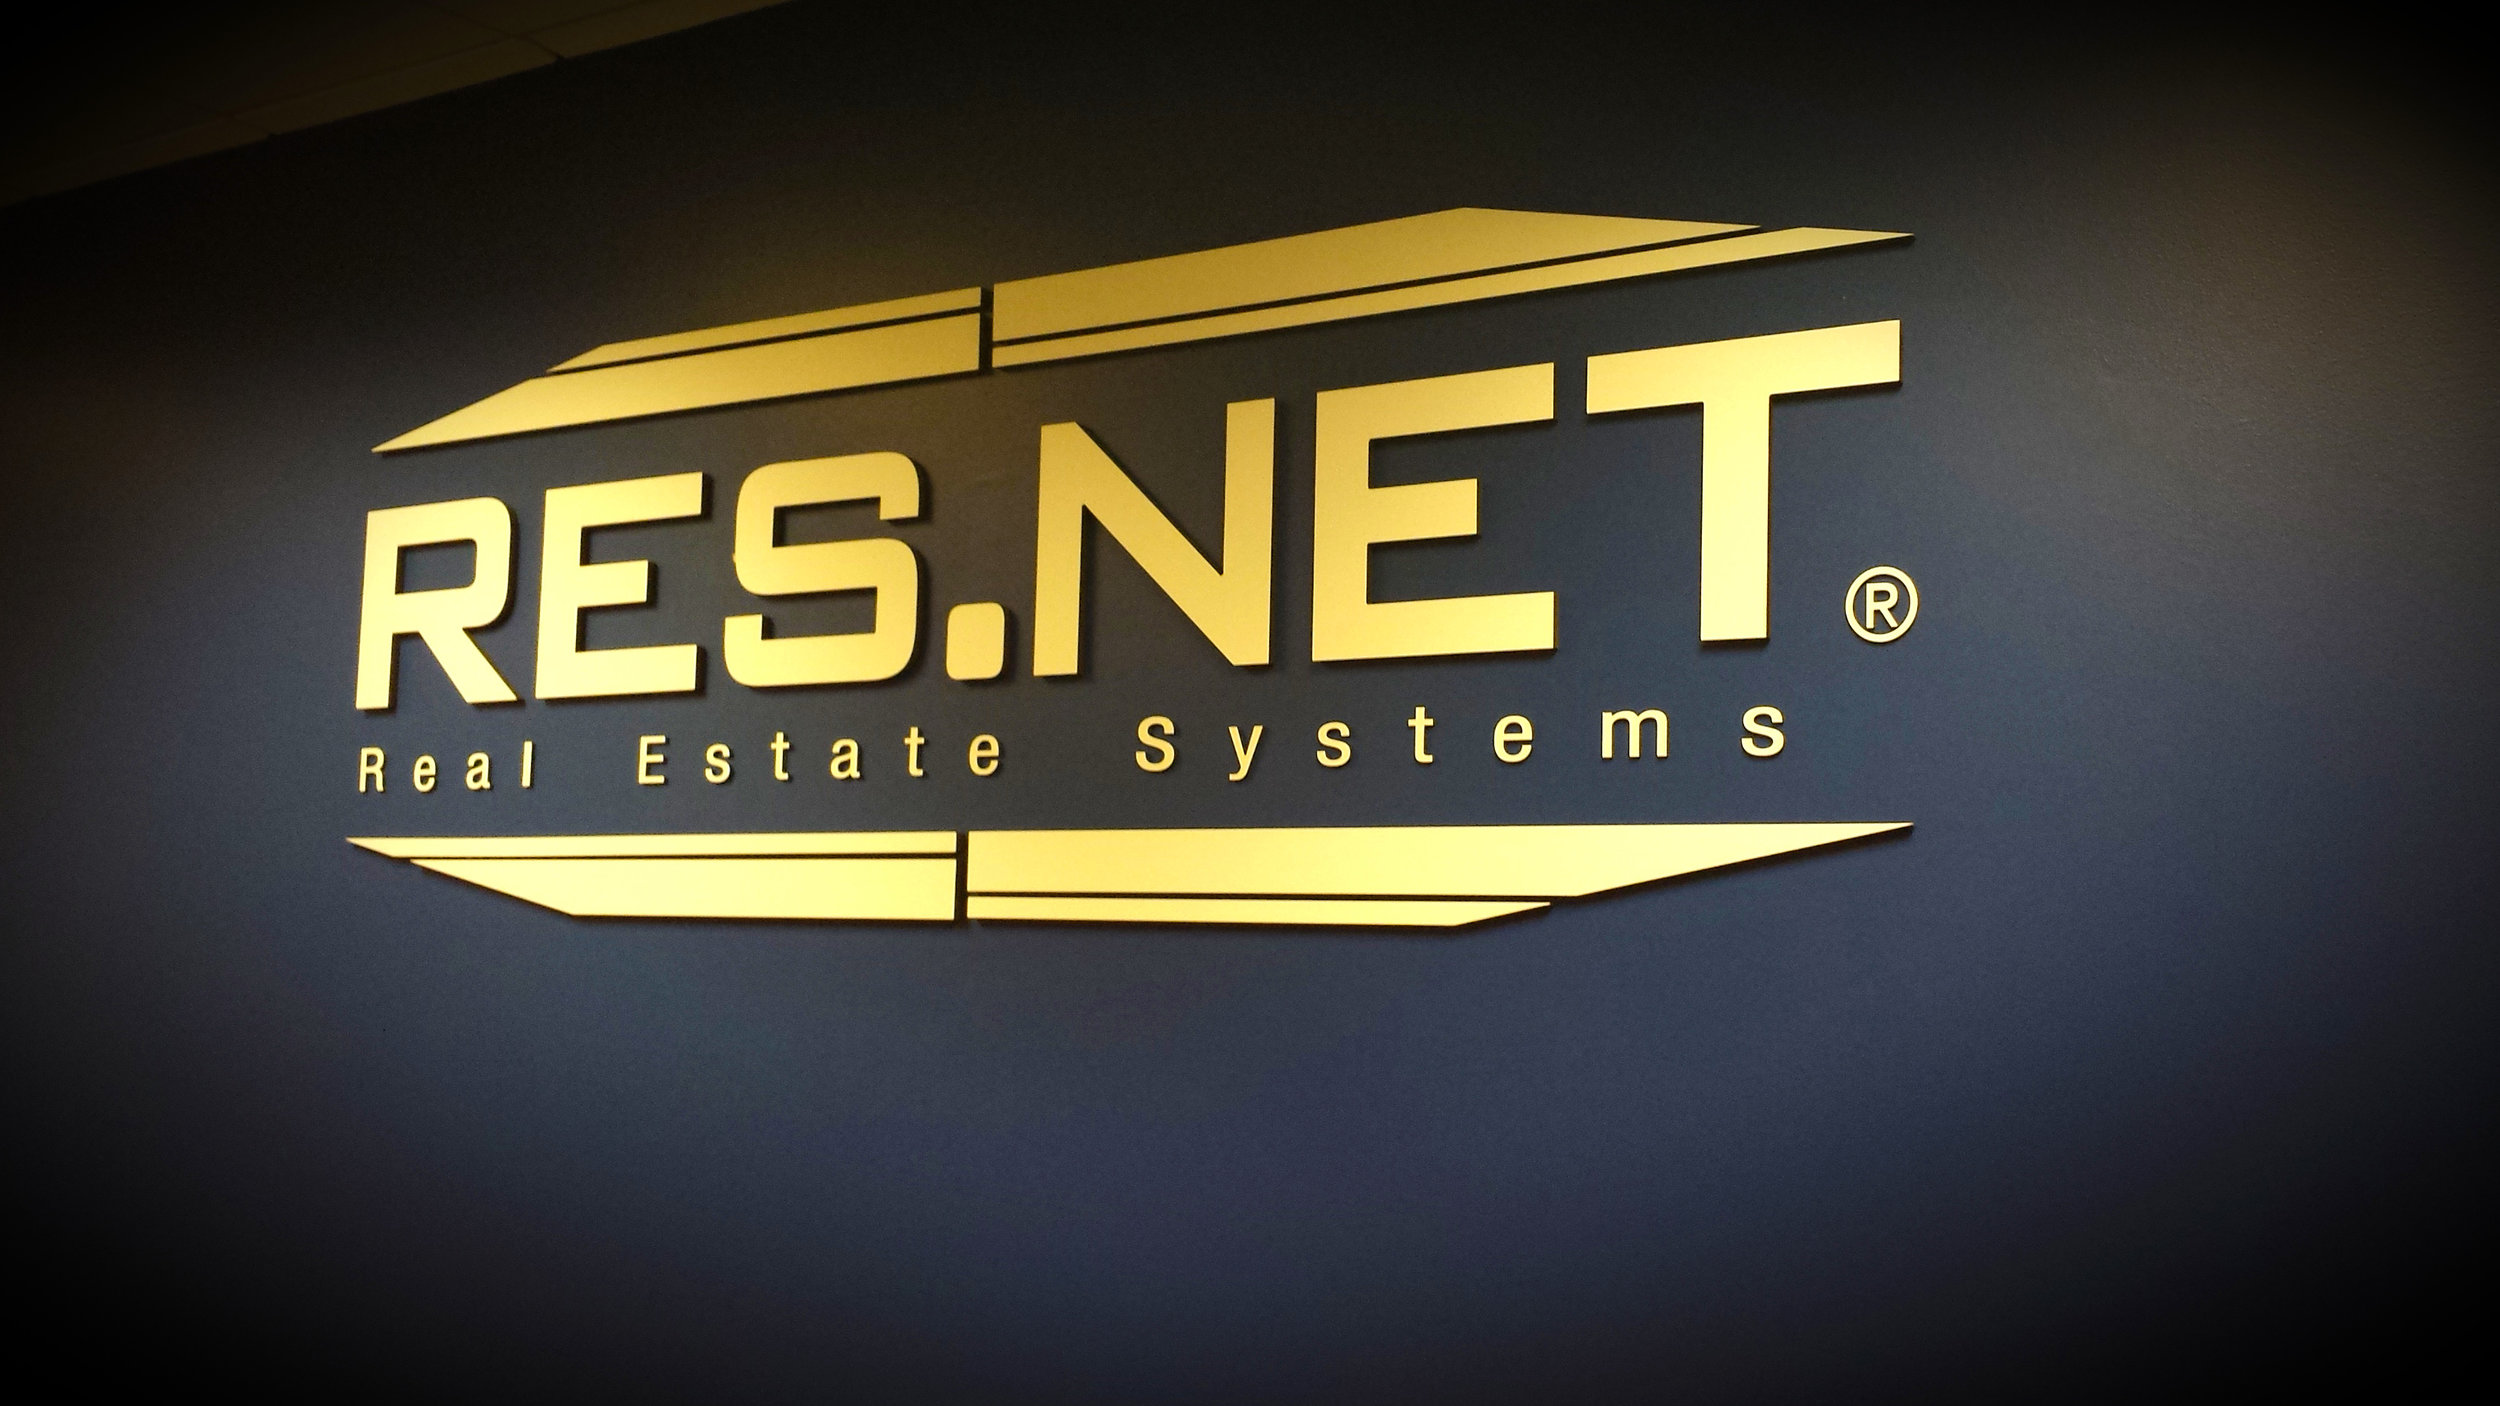 RES.NET Real Estate Systems Signage